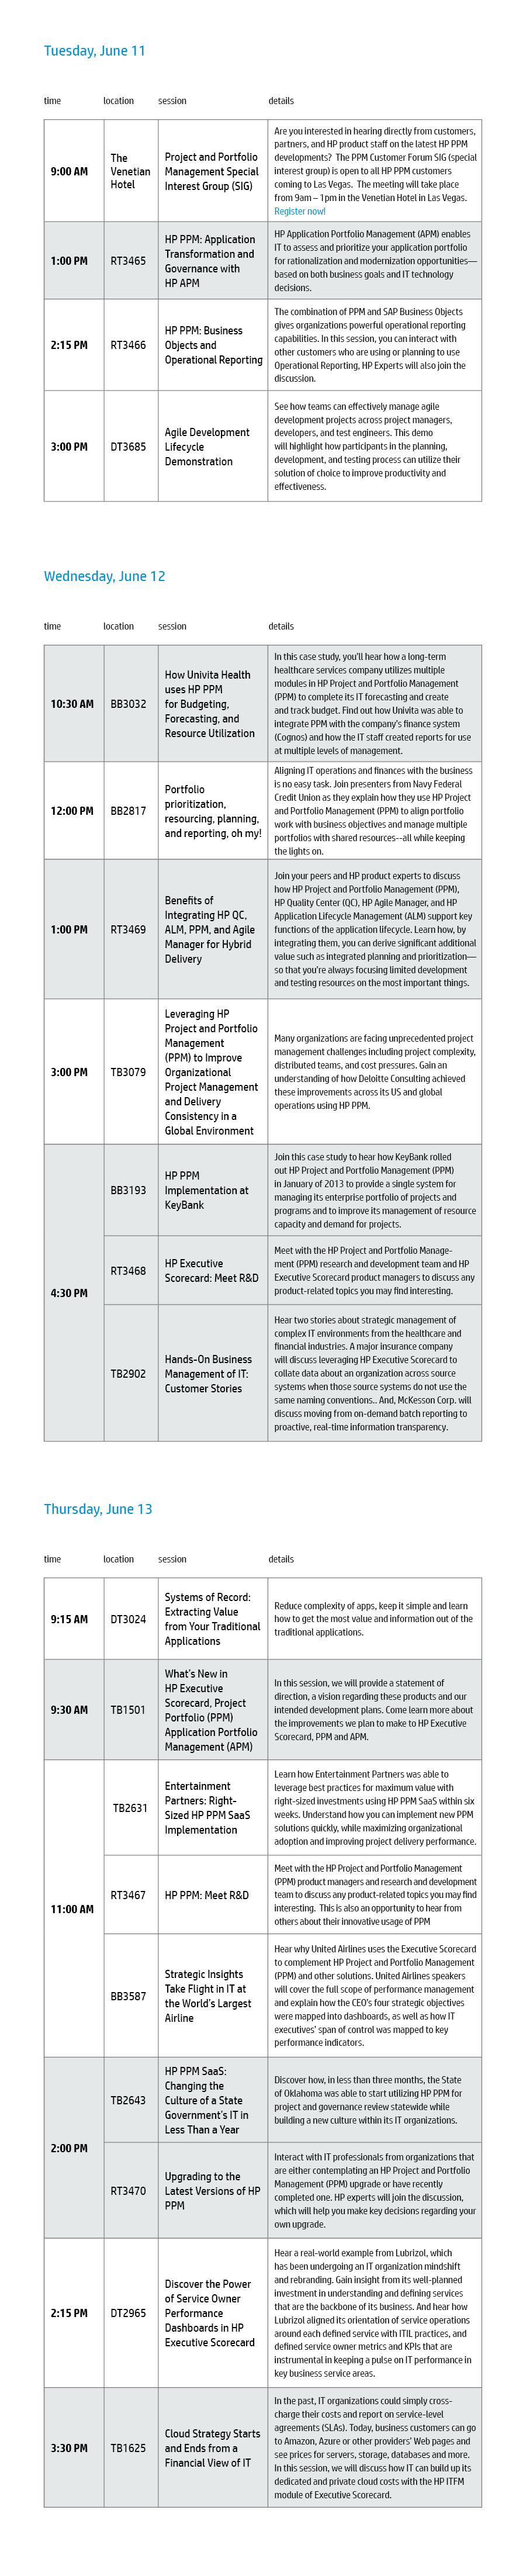 2013 HP Discover Event Schedule_PPM_5-30-13.jpg